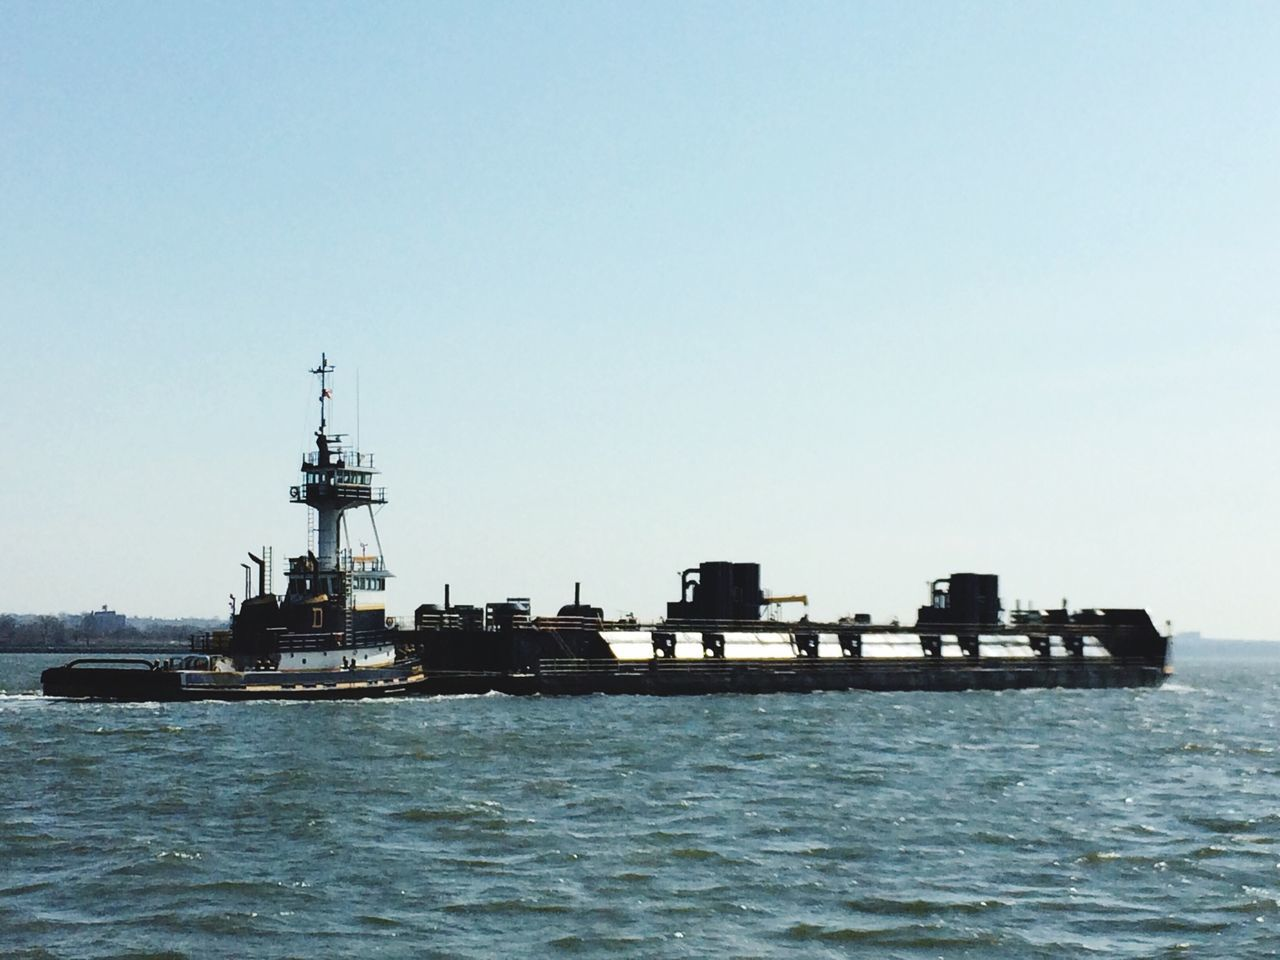 sea, water, nautical vessel, waterfront, copy space, clear sky, transportation, no people, day, outdoors, mode of transport, ship, nature, freight transportation, sailing, shipping, built structure, horizon over water, architecture, beauty in nature, lighthouse, offshore platform, sky, drilling rig